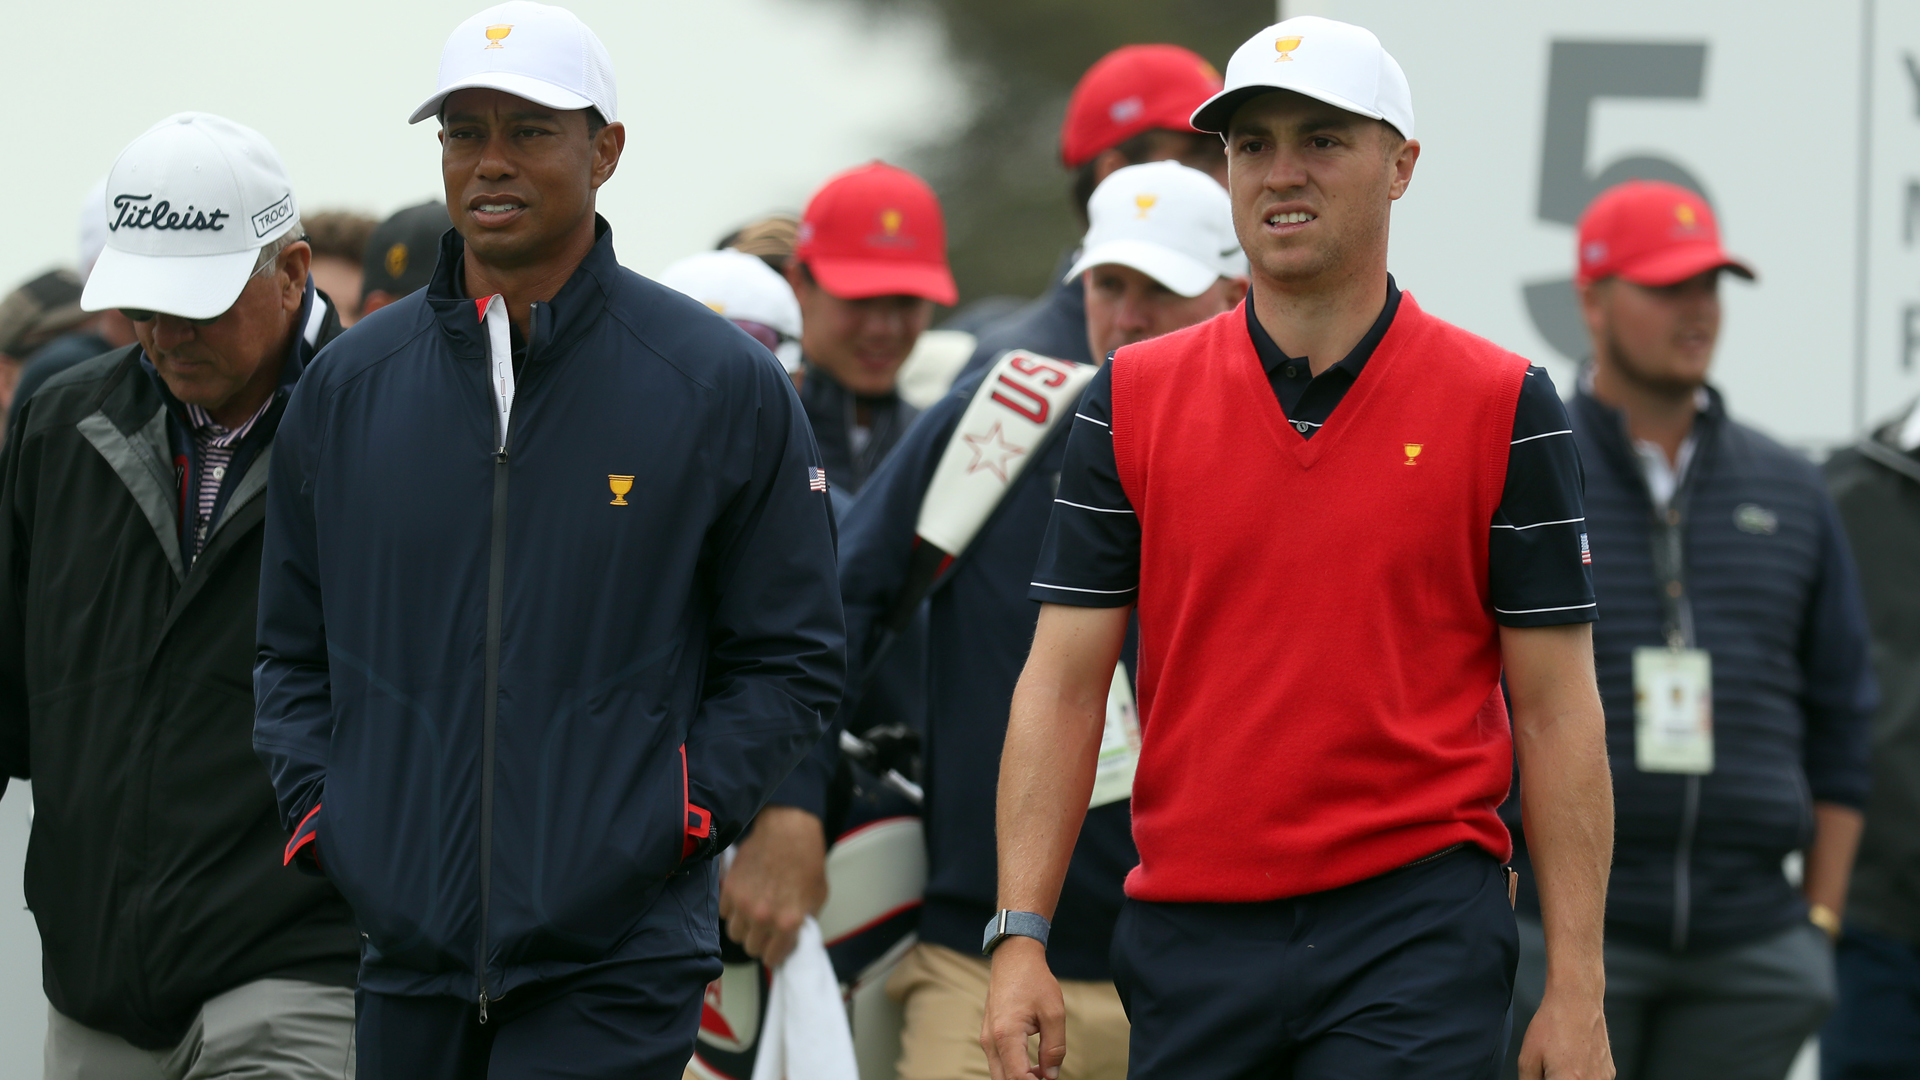 Presidents Cup 2019: Tiger and Thomas to face Leishman, Niemann in opening match